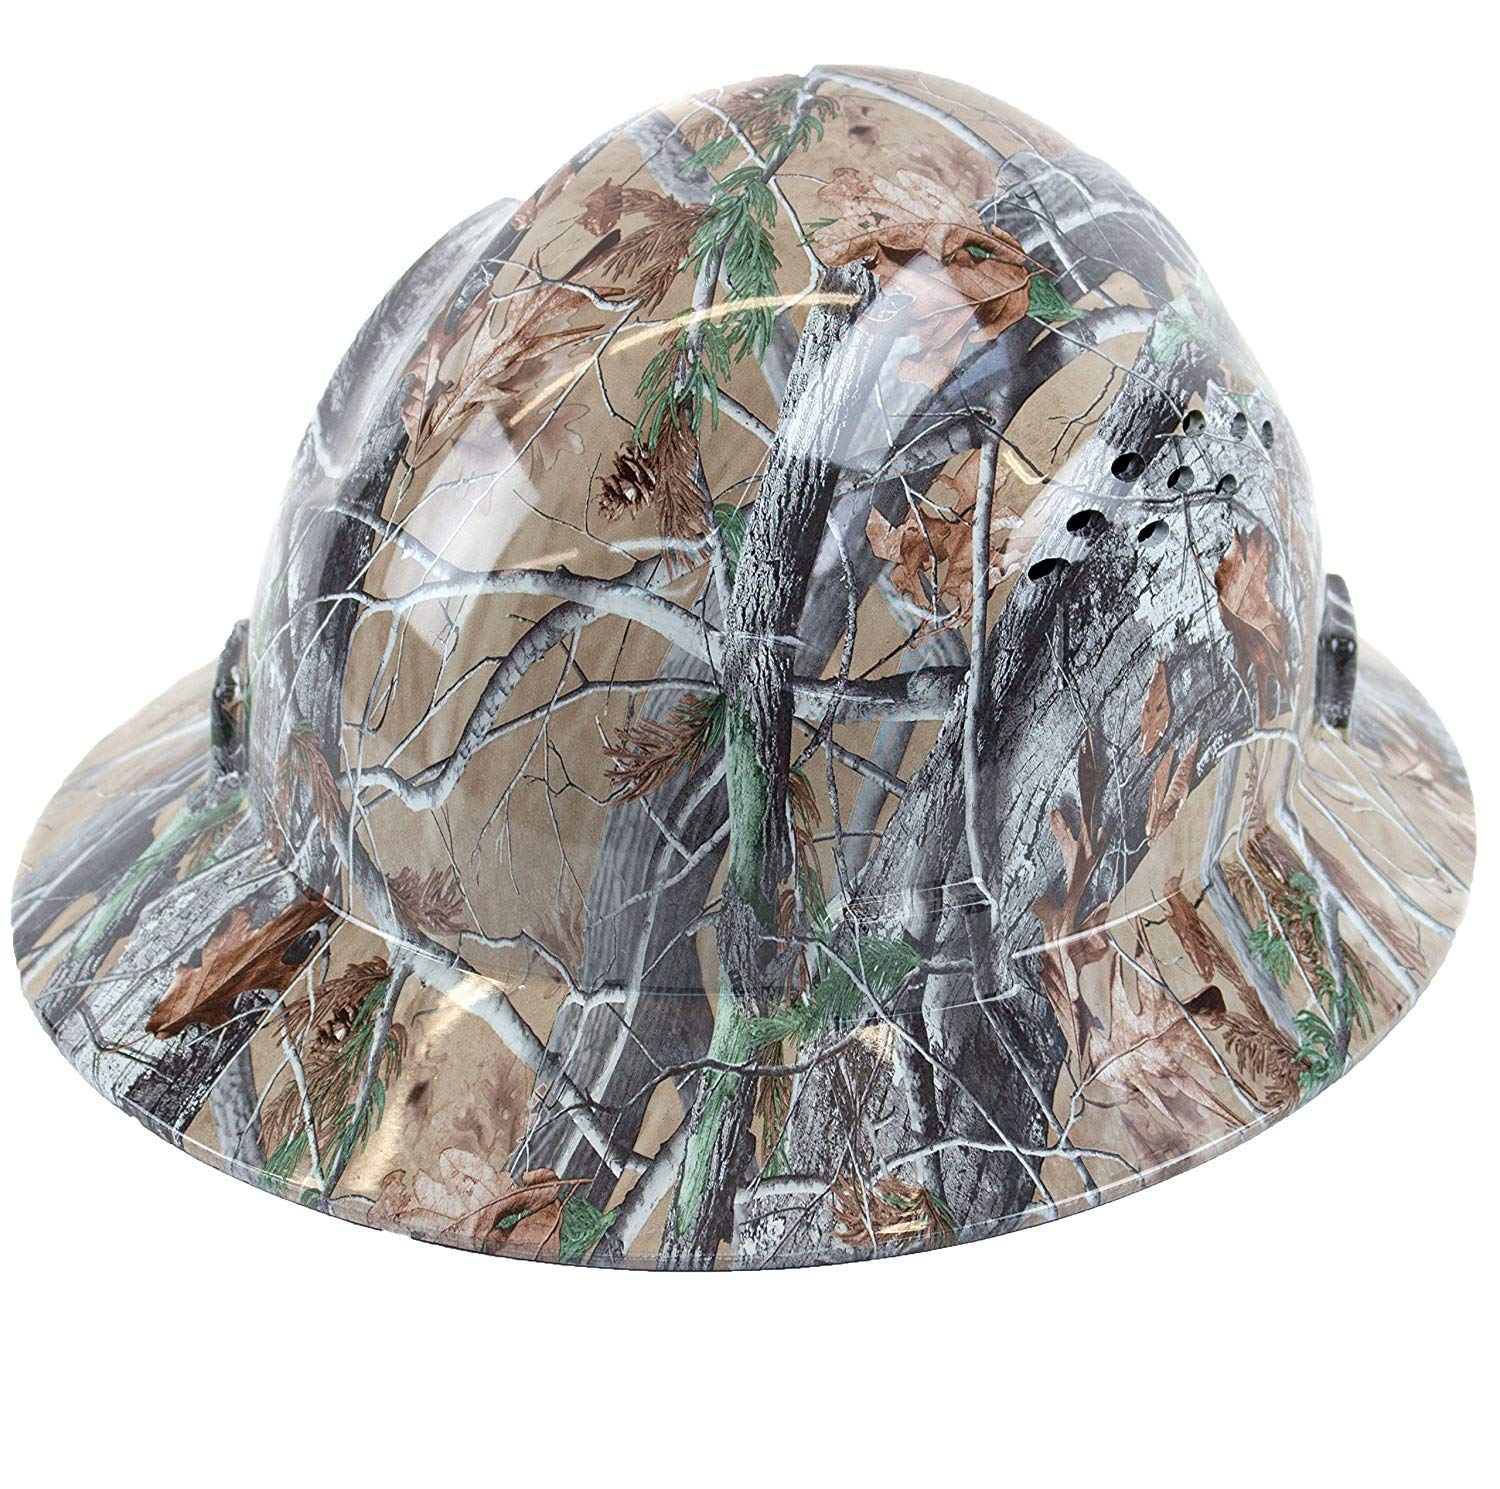 Troy Safety RK-HP44-ORIENT Patterned Hard Hat Full Brim Style with 4 Point Ratchet Suspension (Orient) by Troy Safety